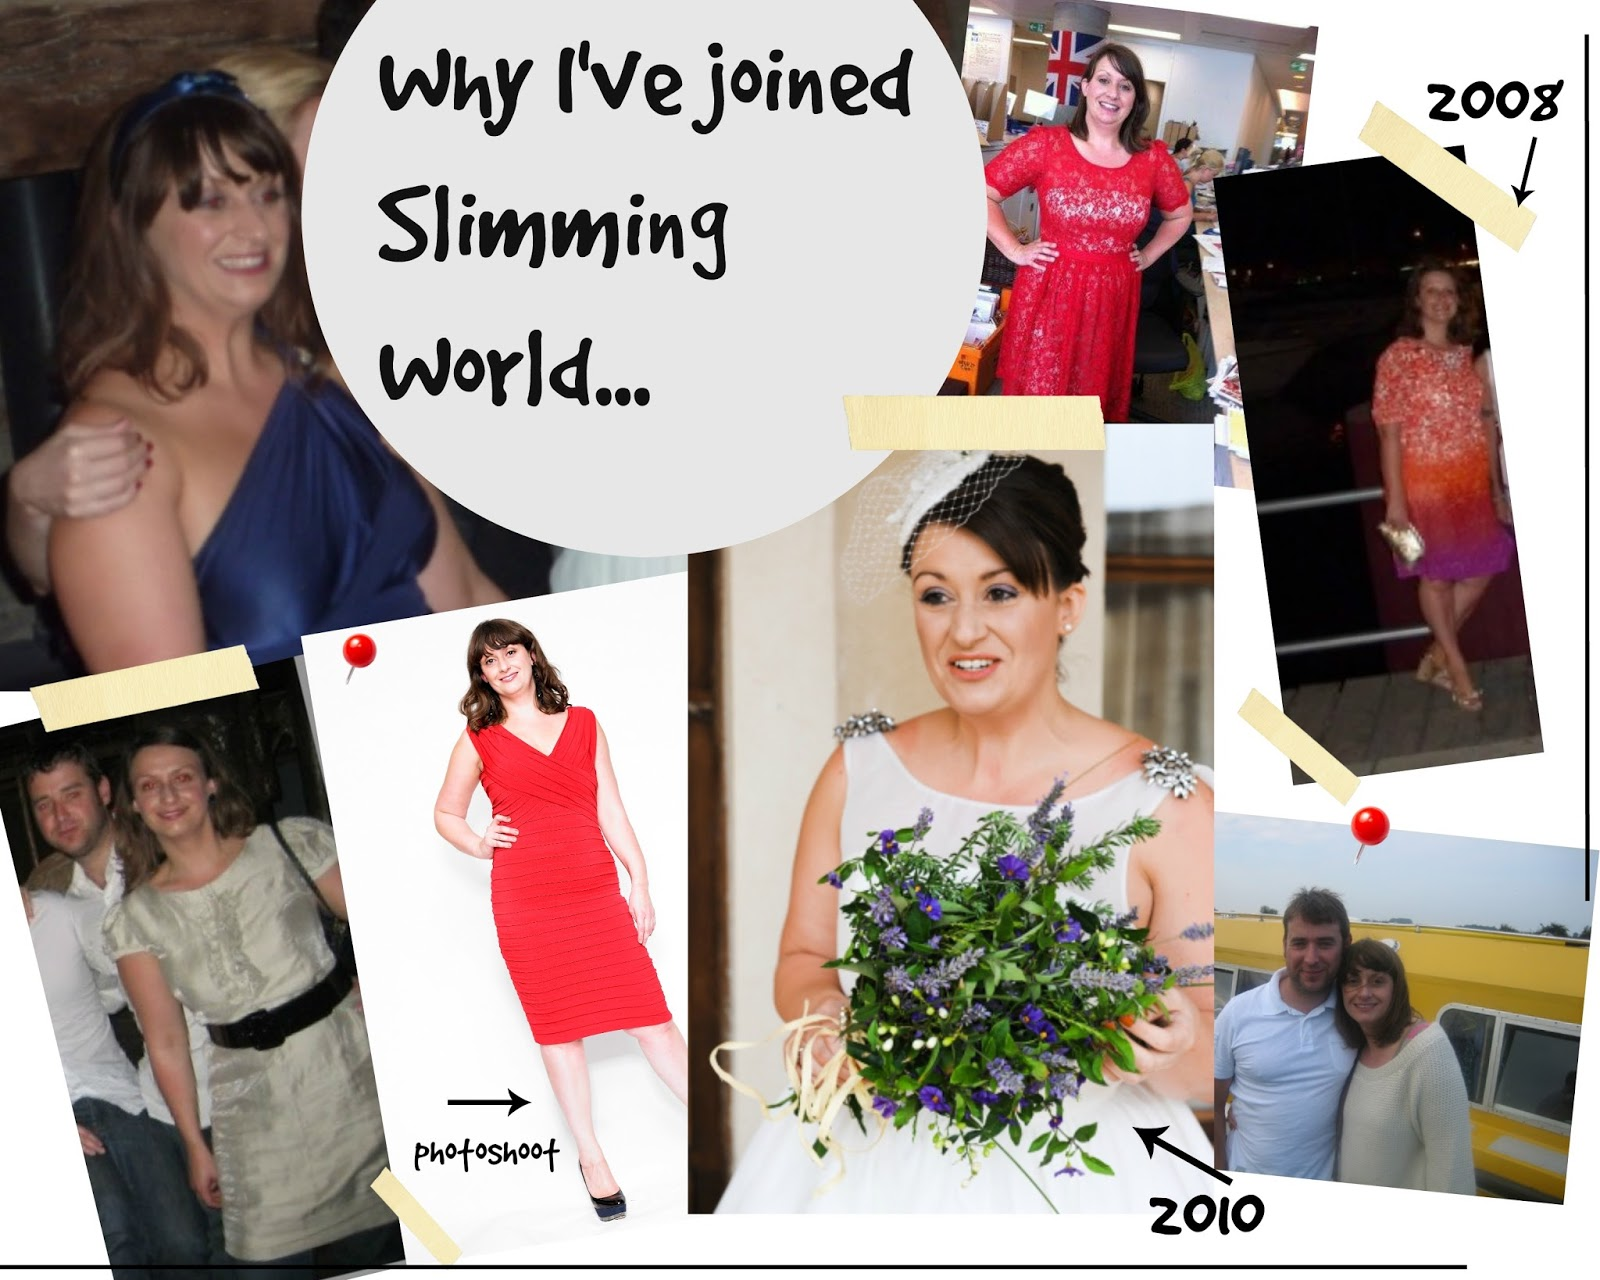 mamasVIB | V. I. BABYMAMAS: 10 Reasons why I've joined Slimming World – and it's not just to loose weight!